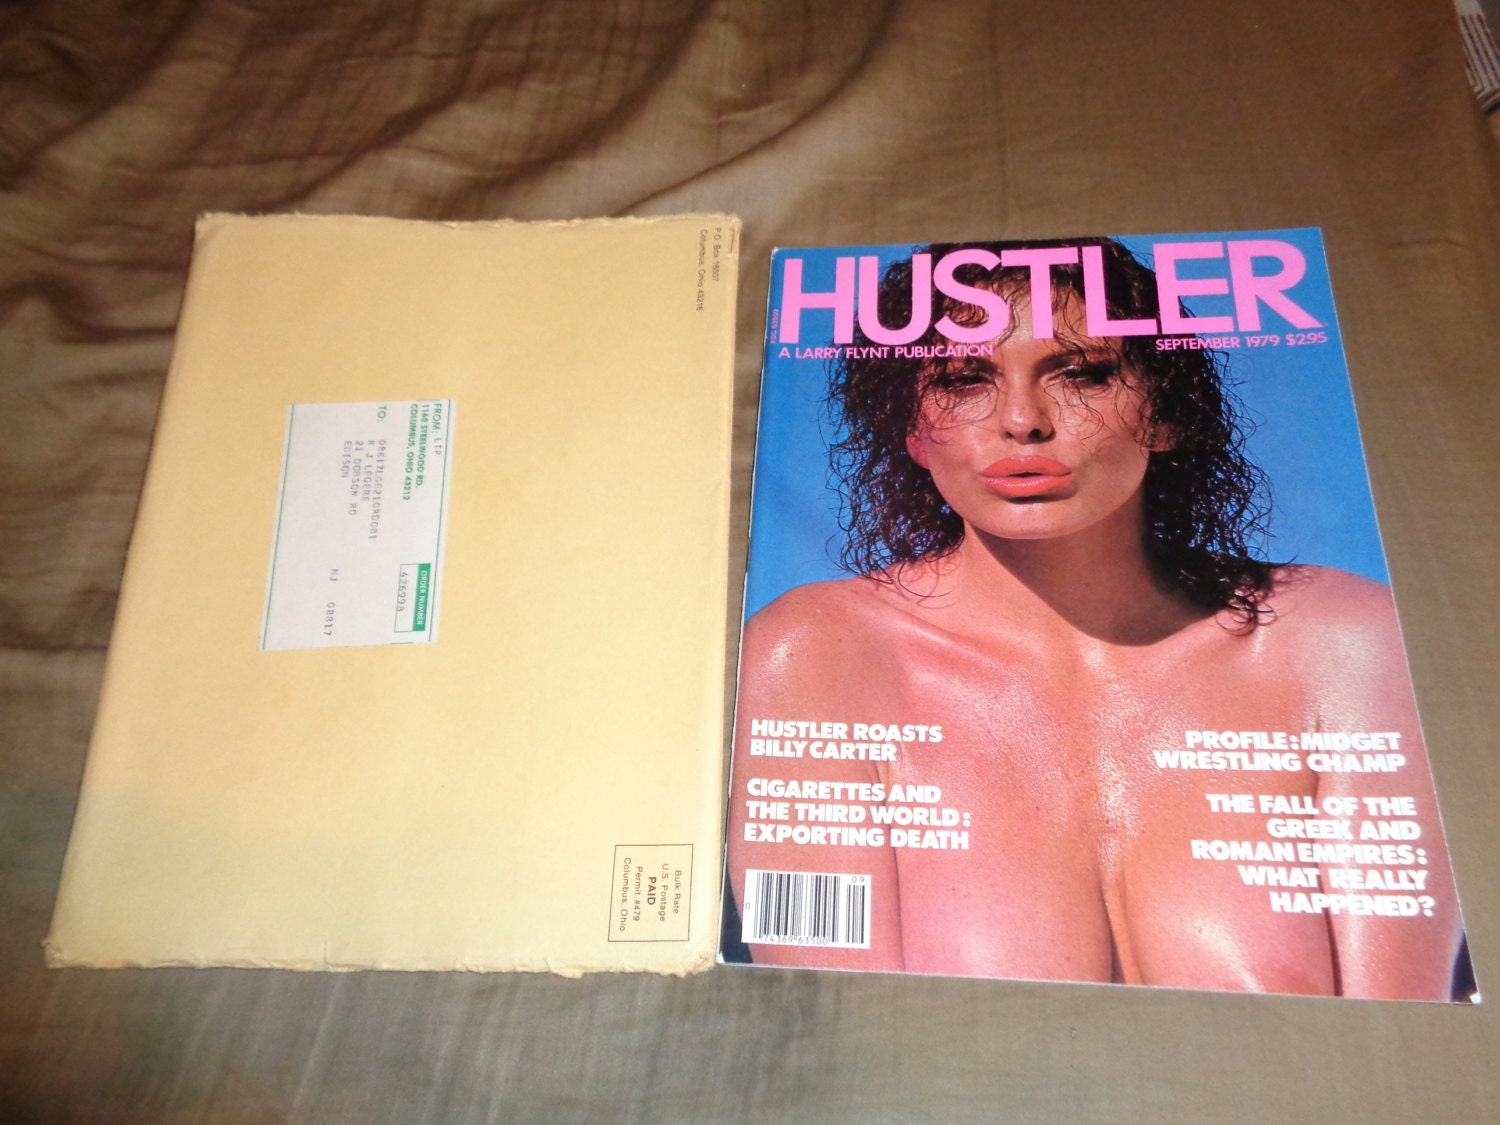 Gets hustler centerfold photo outfit and